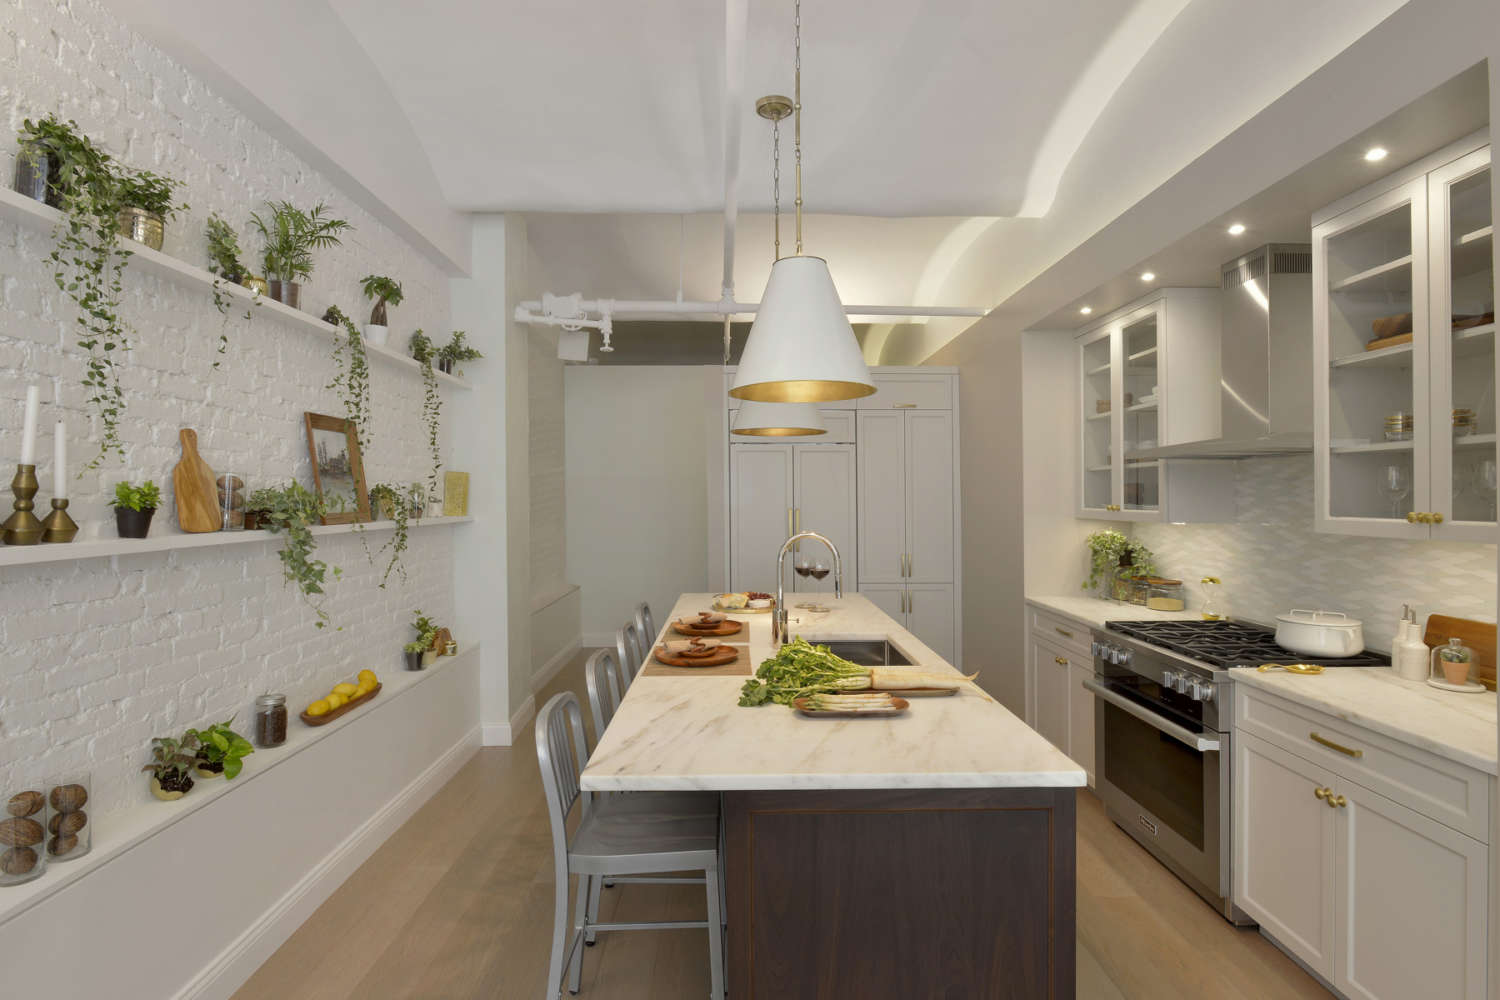 NYC loft kitchen features white painted brick walls with open shelving, oak flooring, high ceilings, gold accents and a mix of white painted and walnut shaker style frameless cabinets by Bilotta. Long center island has marble countertop and seating. Design by Tabitha Tepe of Bilotta Kitchens.